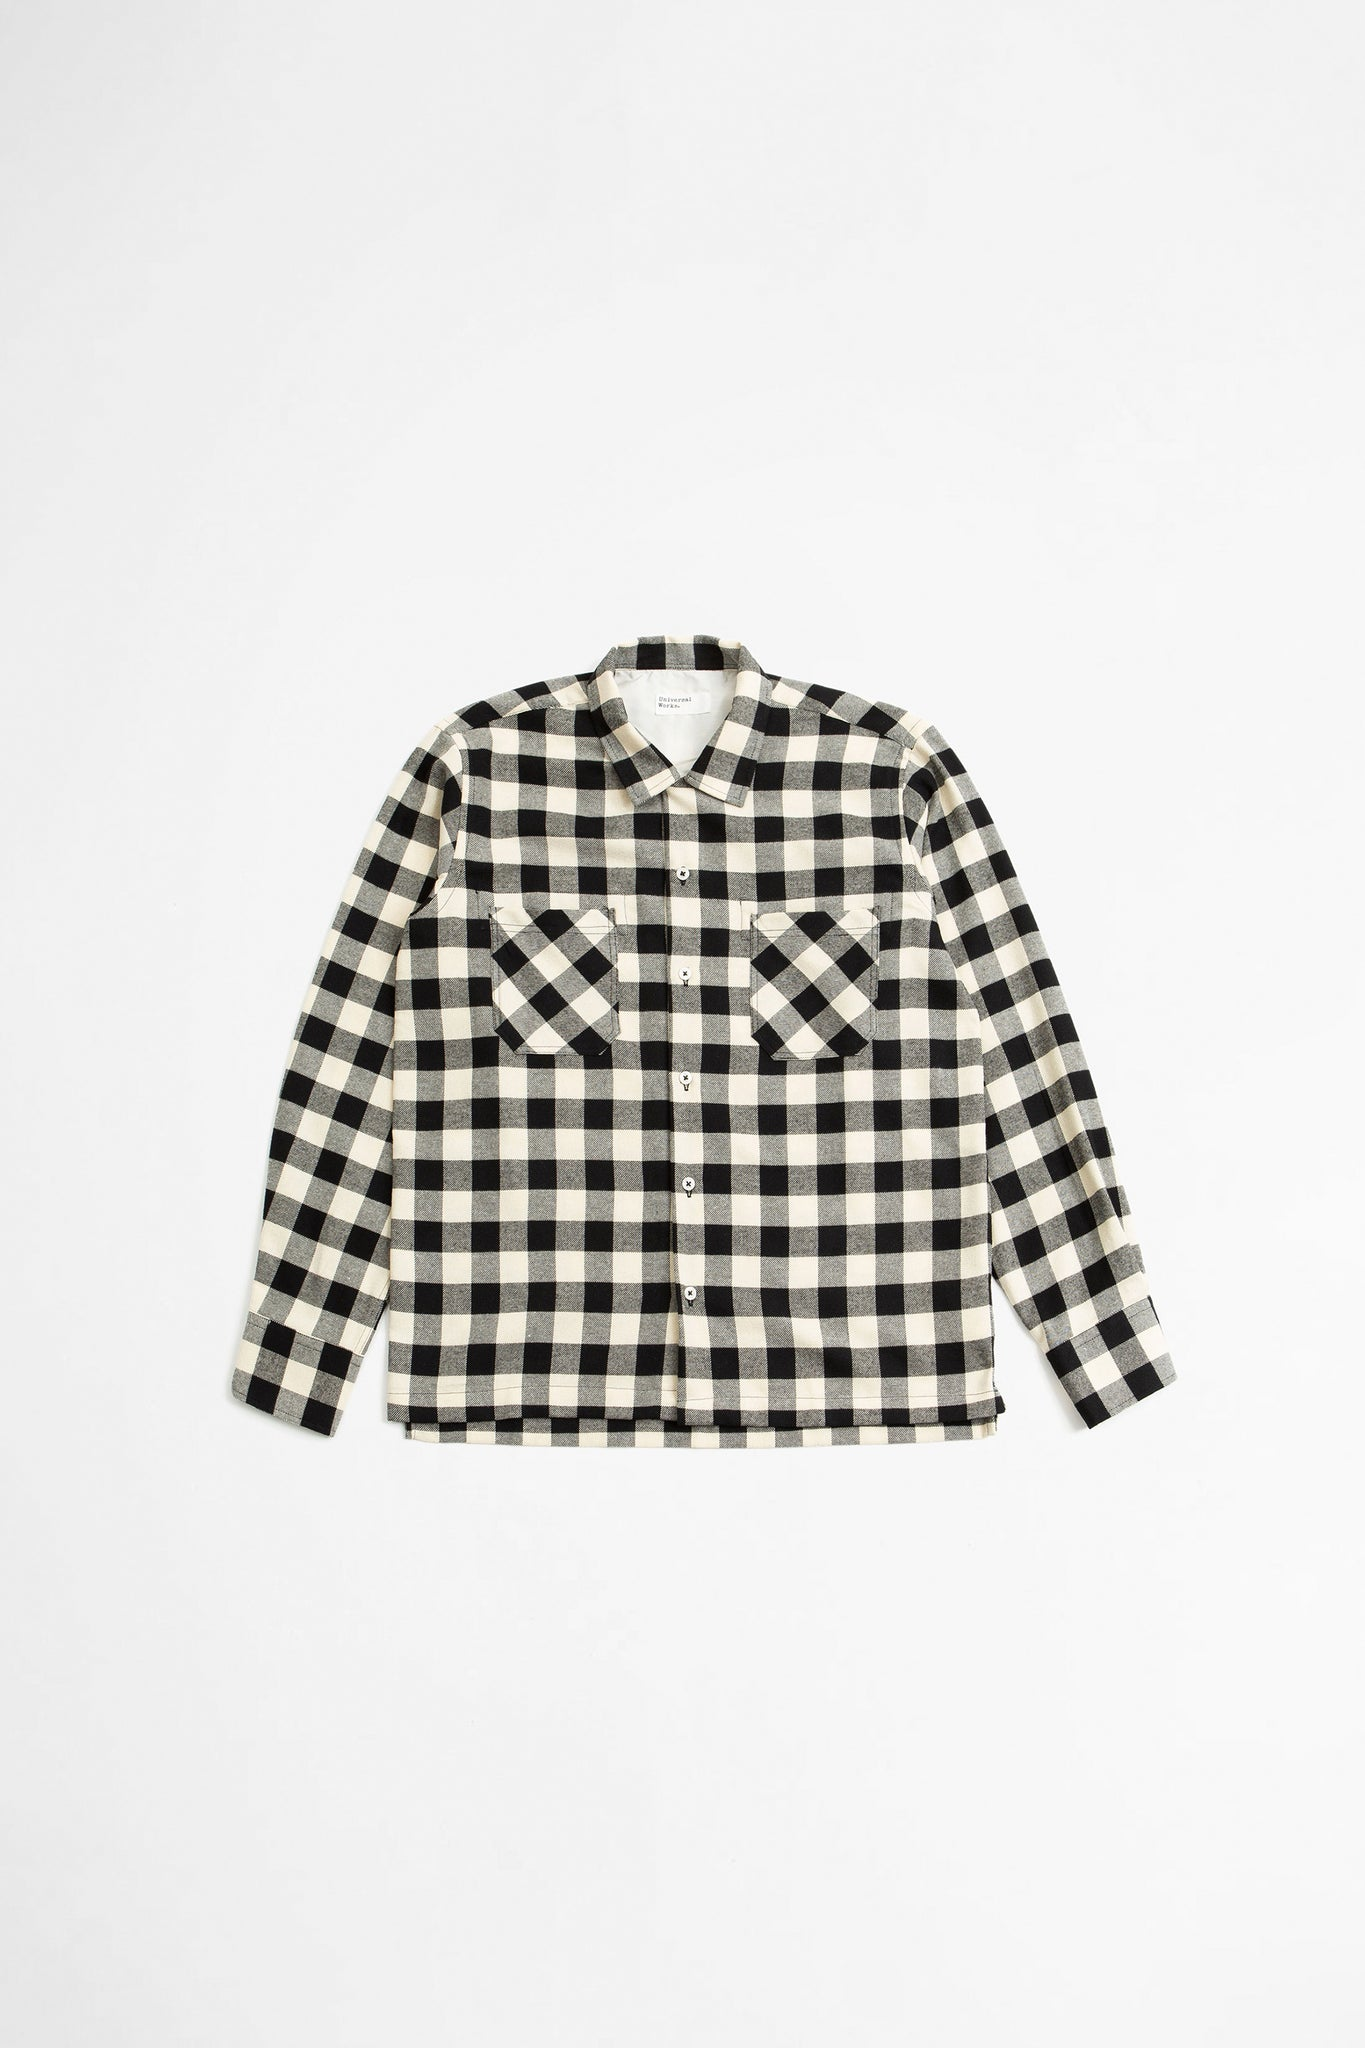 Garage shirt II recycled check ecru